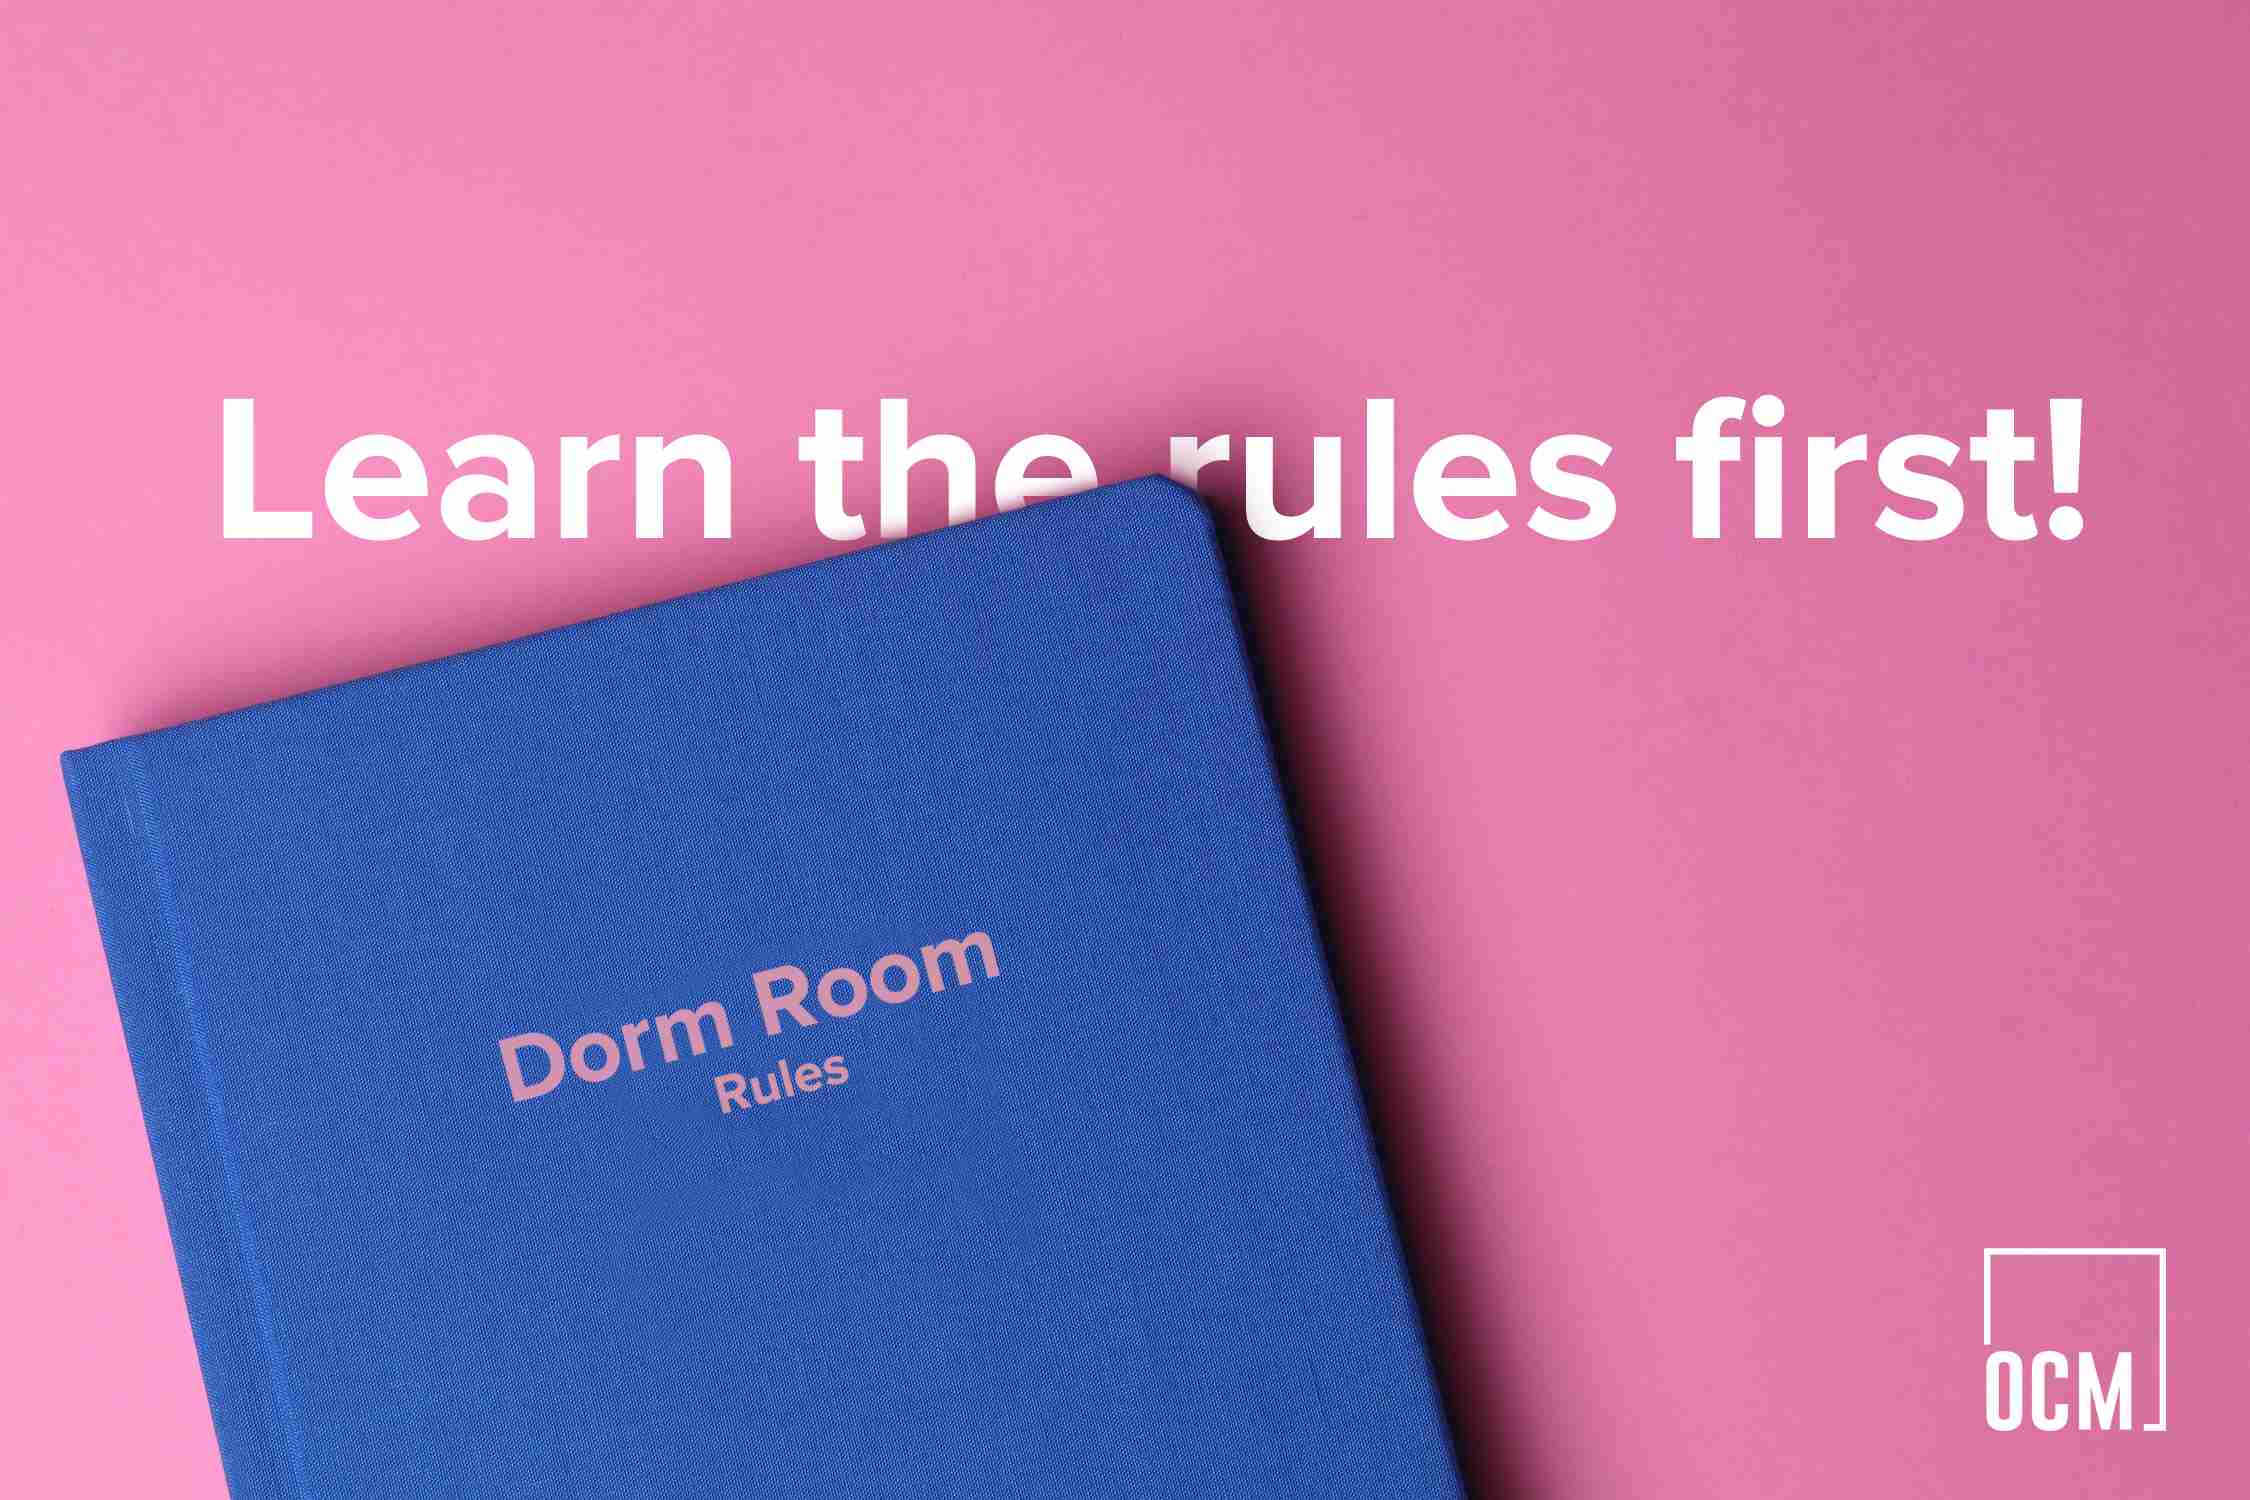 Book of Dorm Room Rules